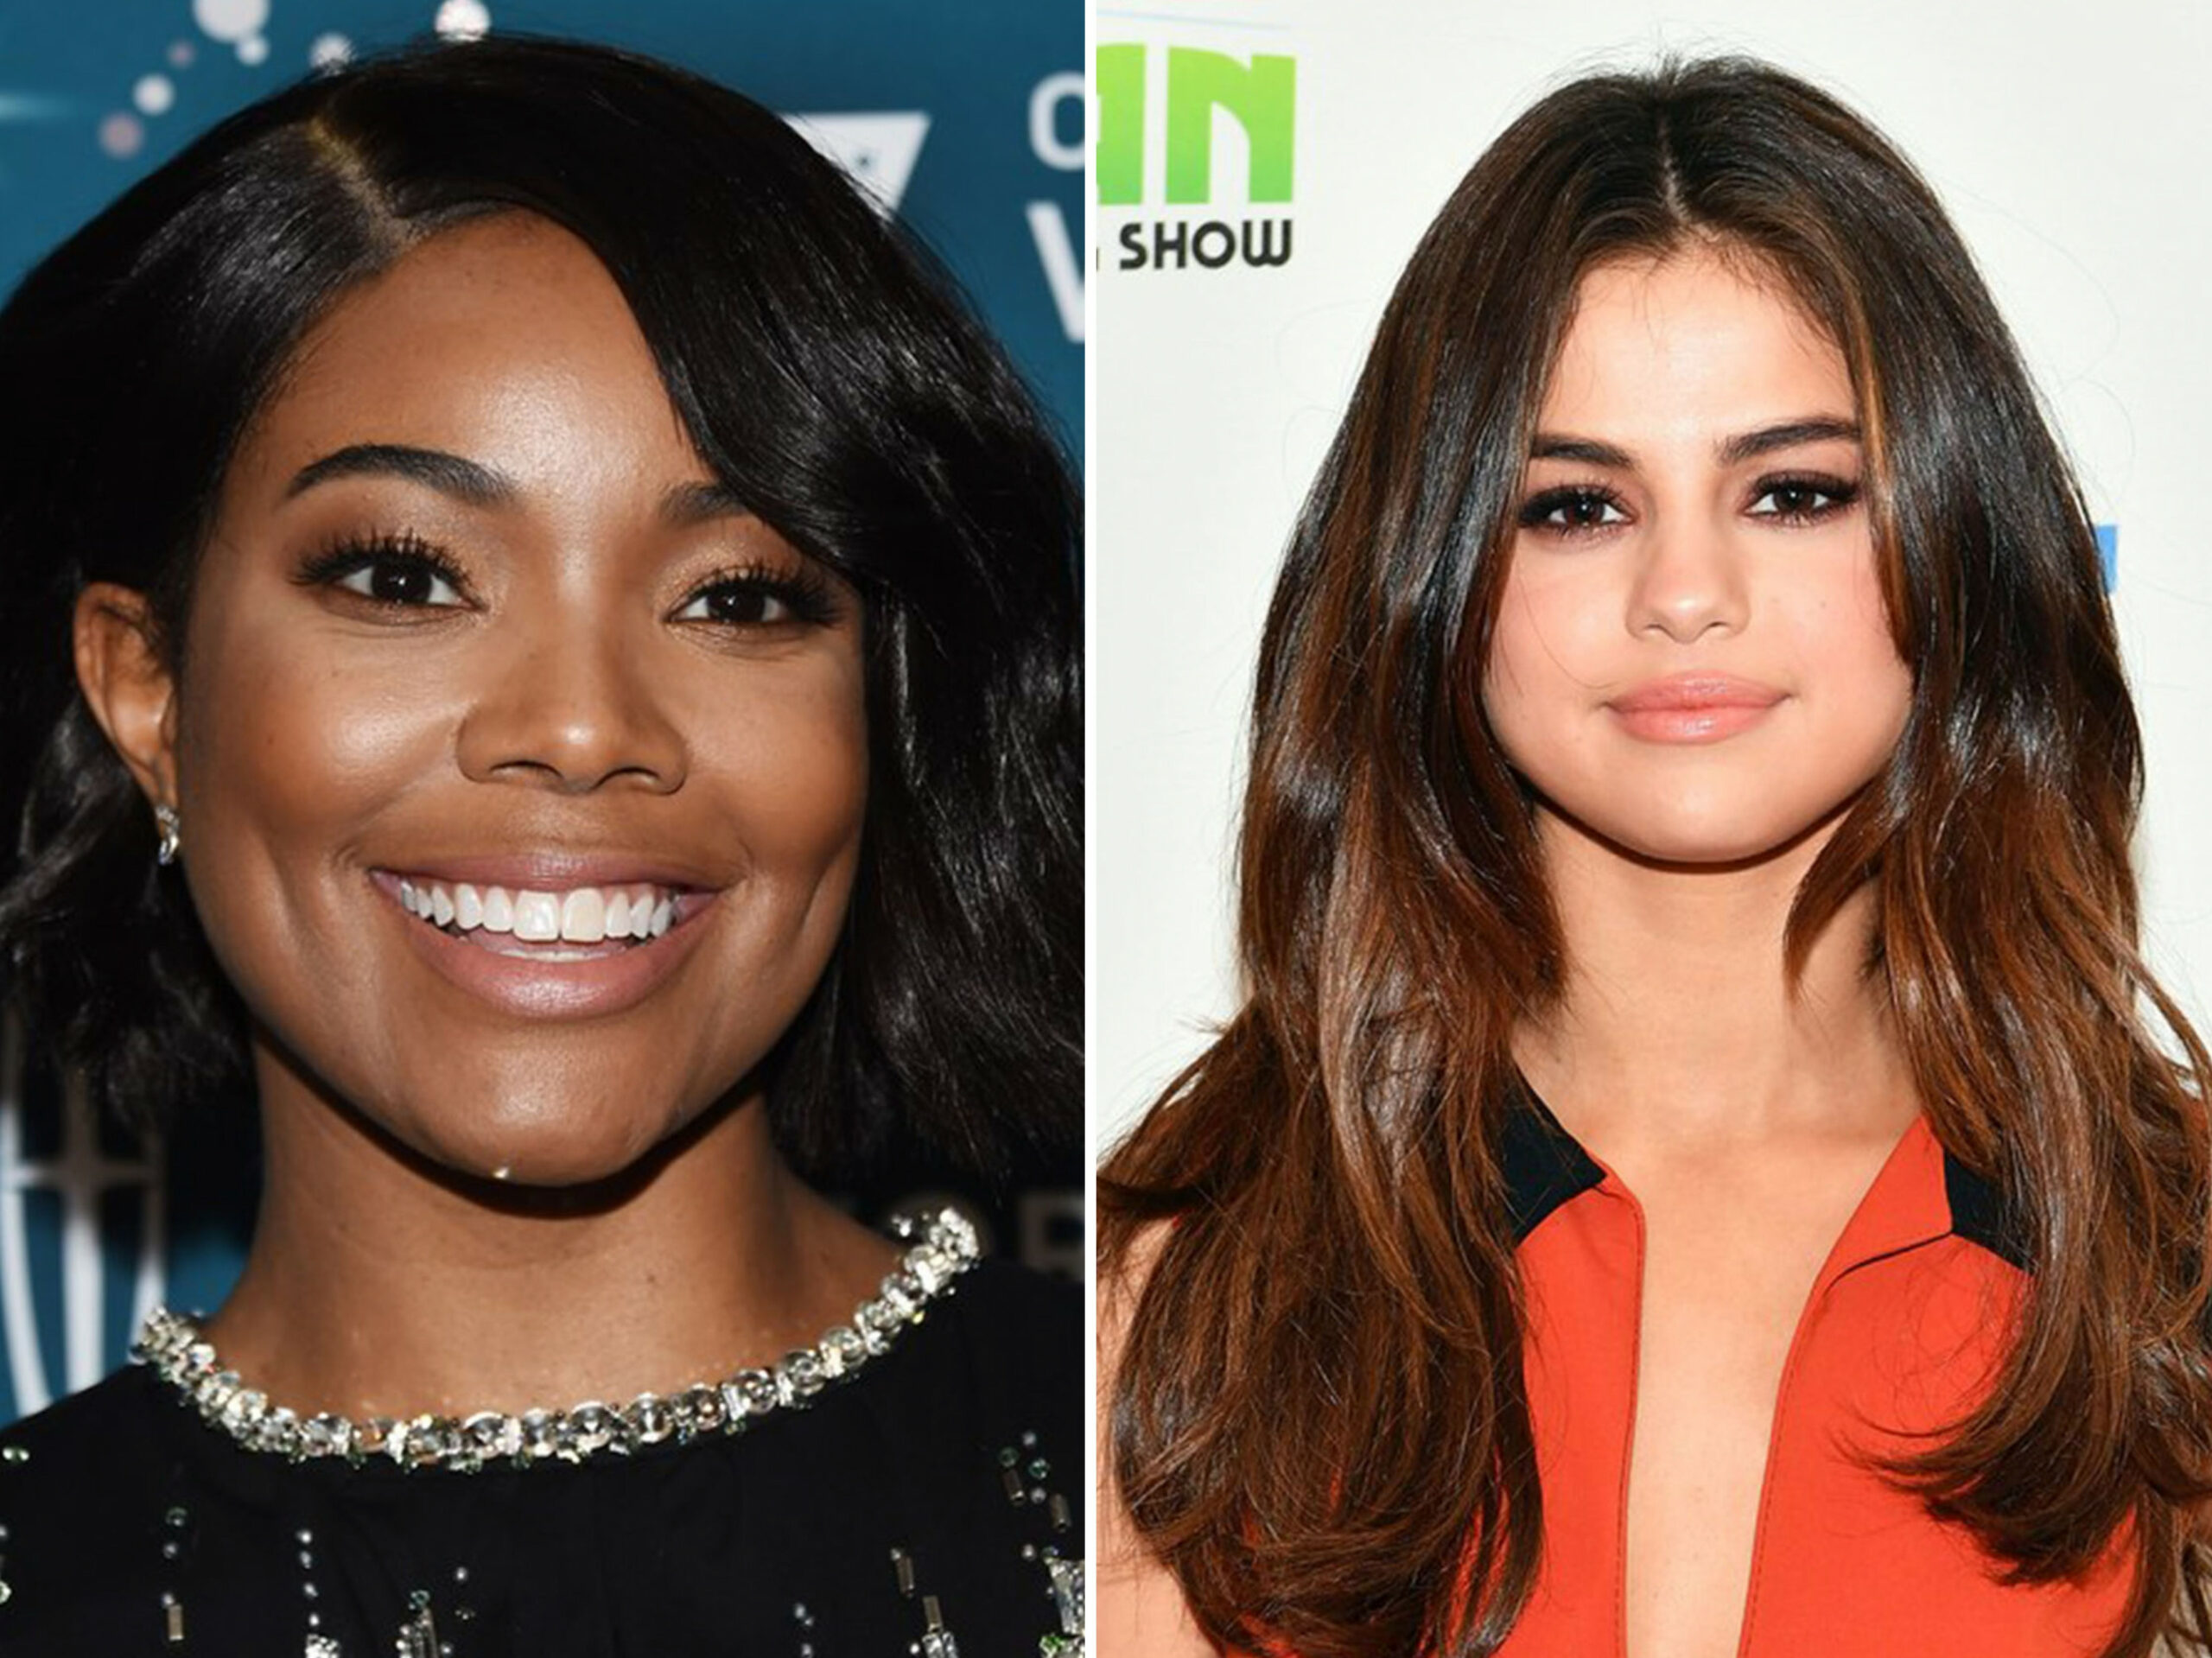 The 10 Best Haircuts for Round Faces, According to Stylists  Allure - Best Haircut For Round Face